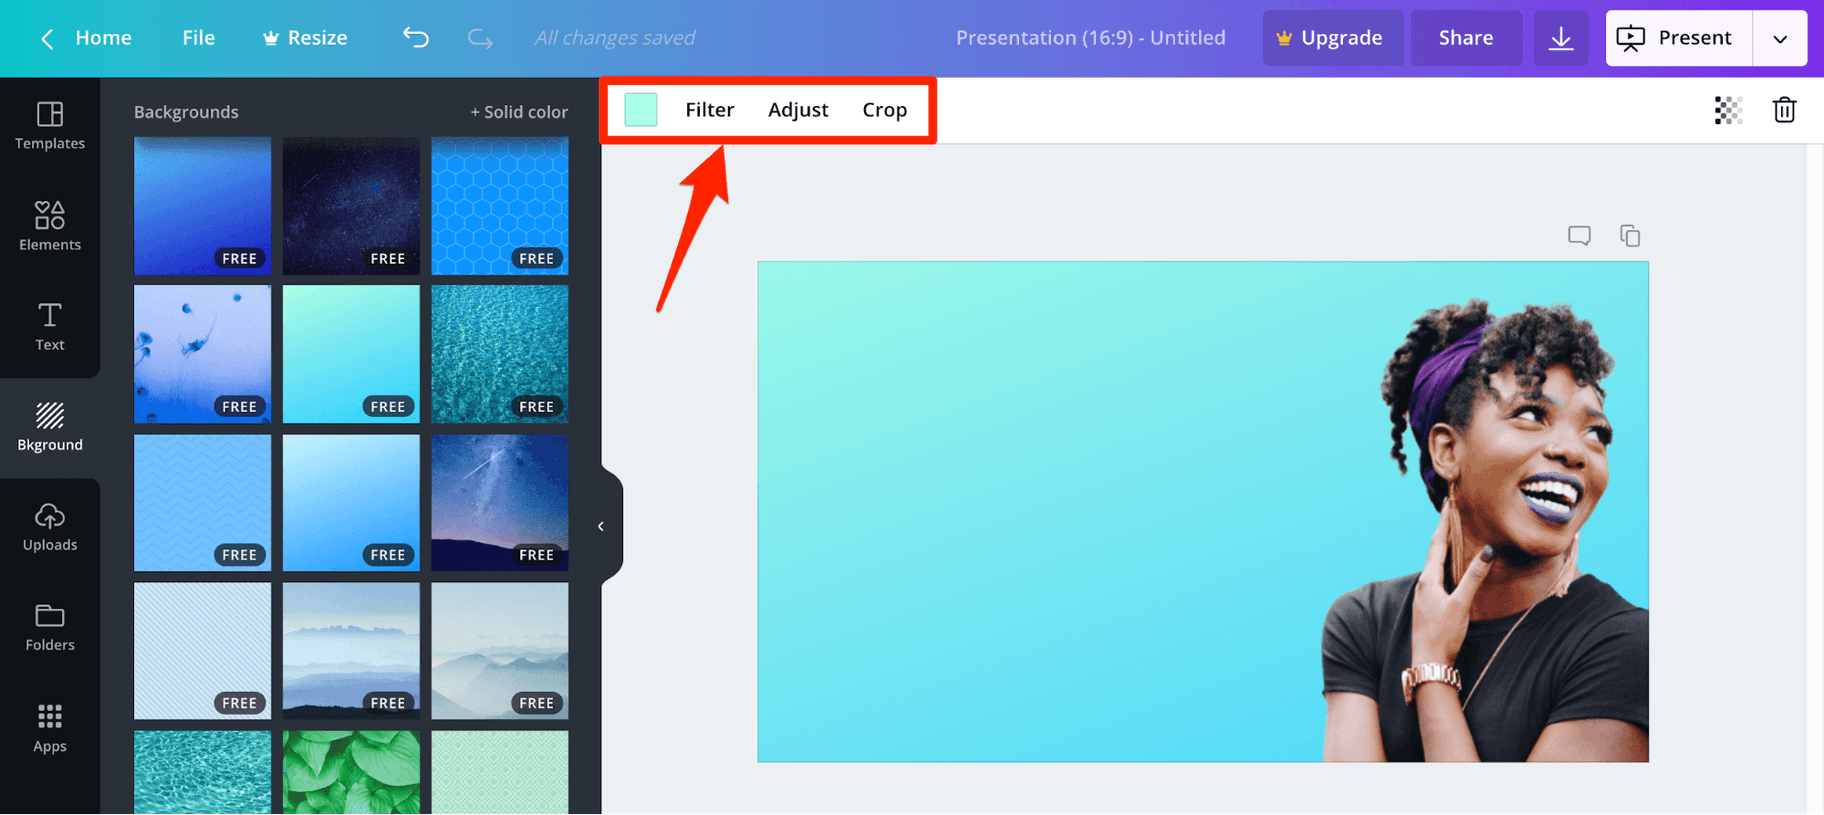 Edit Background of Image in Canva